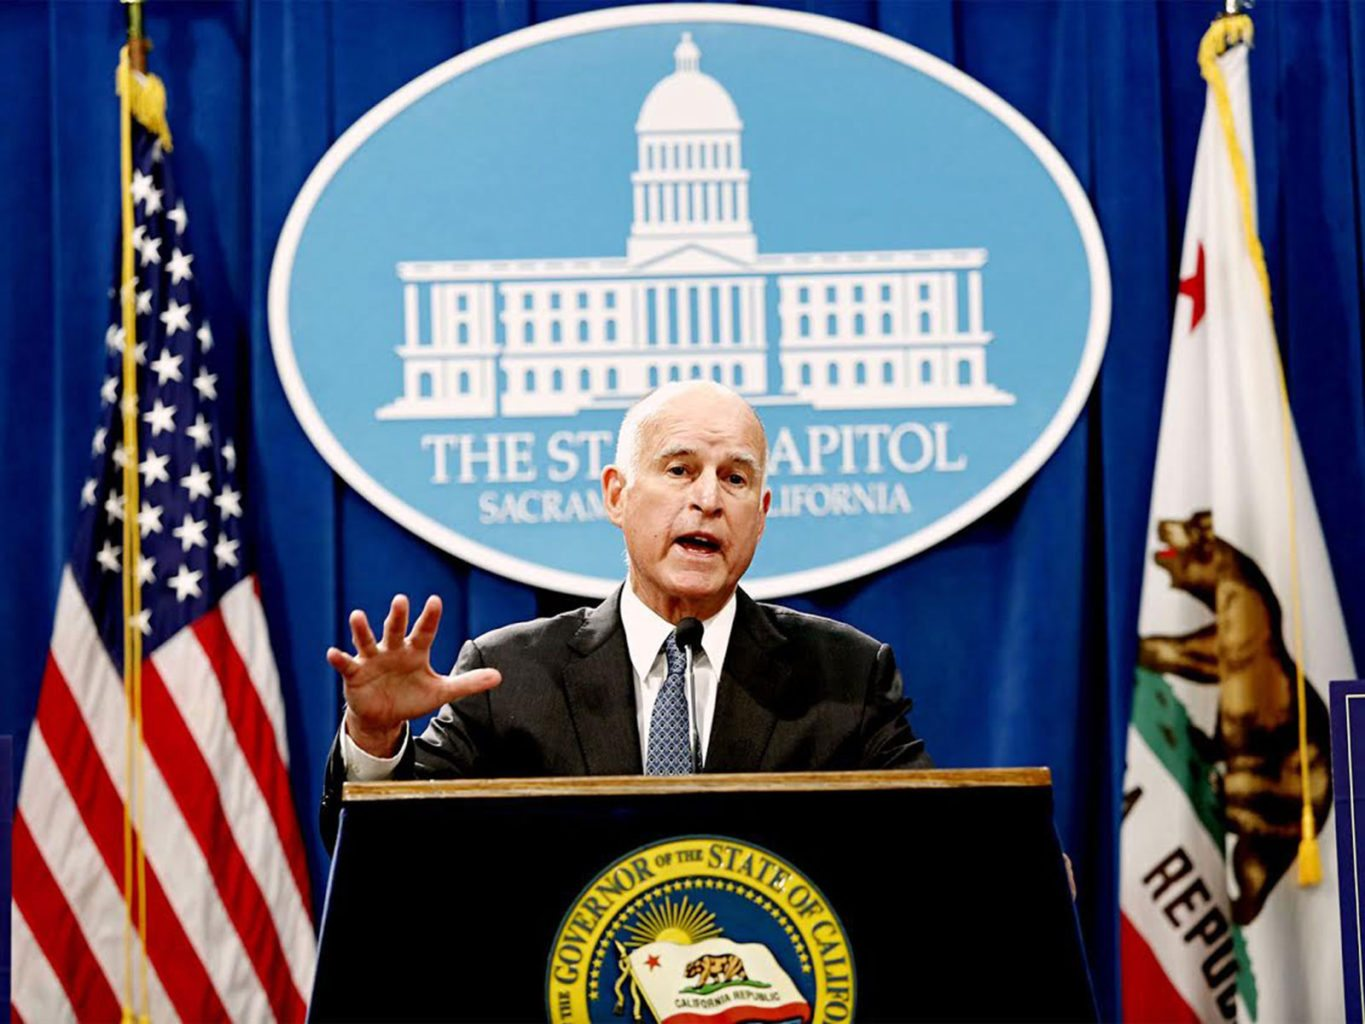 California Gov. Jerry Brown releases his proposed budget for 2017-18 at the State Capitol building in Sacramento on Jan. 10, 2017. (Gary Coronado/Los Angeles Times/TNS)